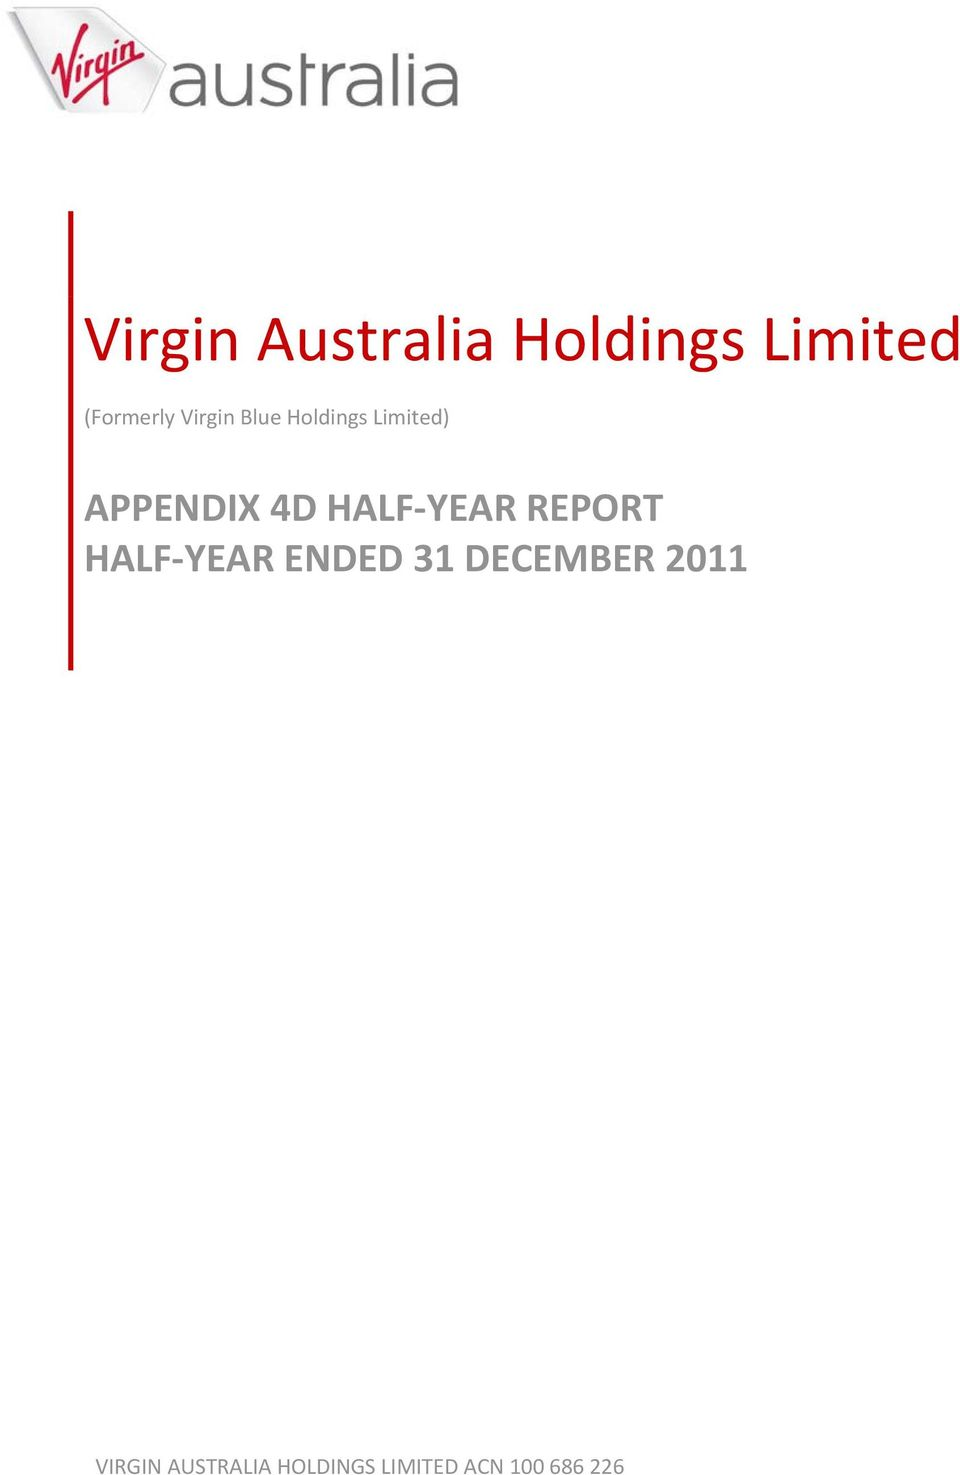 YEAR REPORT HALF YEAR ENDED 31 DECEMBER 2011